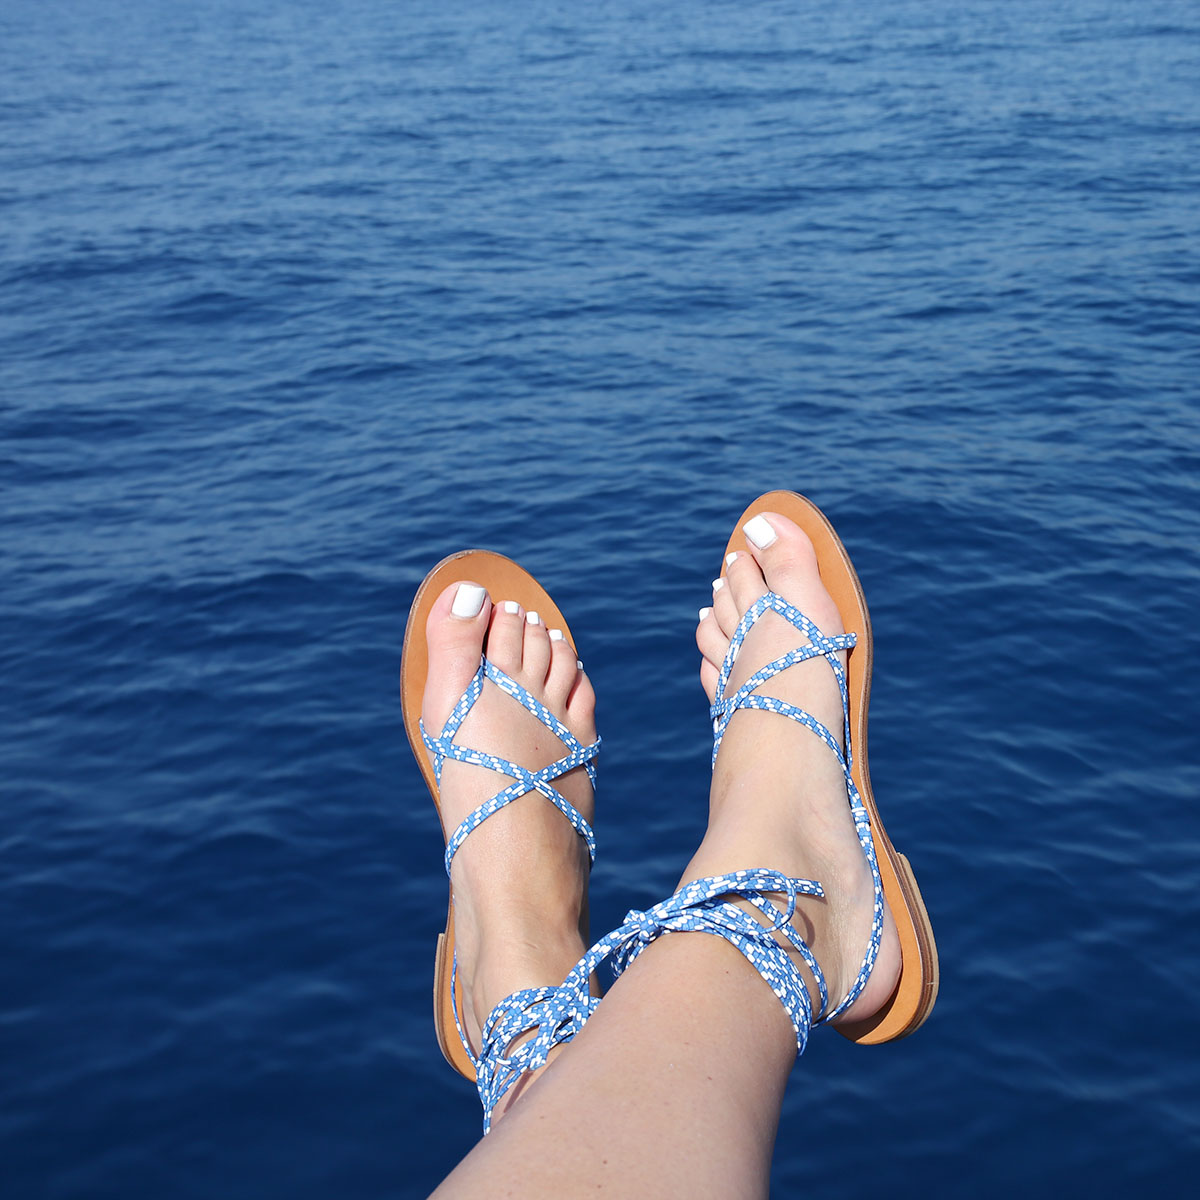 Bows & Sequins sailing on the Mediterranean Sea from Positano to Capri on the Amalfi Coast. Wearing a pair of lace-up M.Gemi sandals!